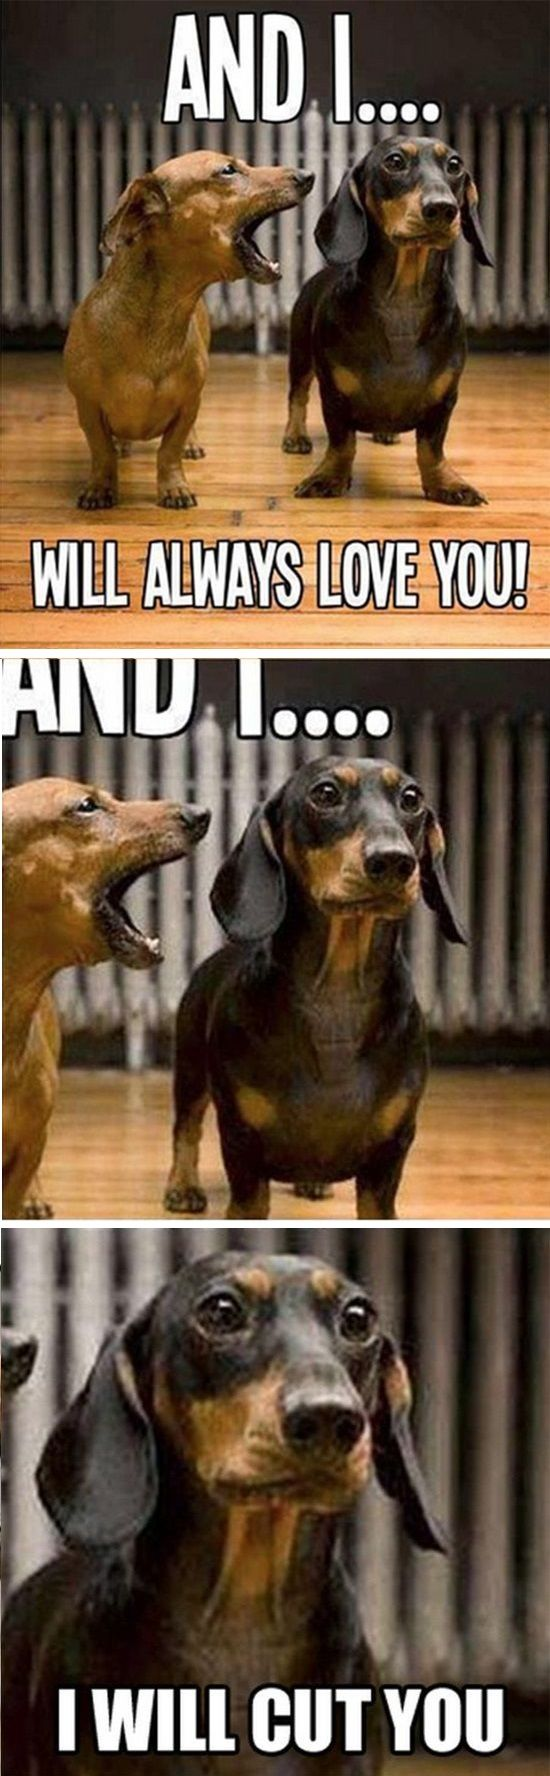 Singing Dachshund ''And I...will always LOVE YOU!... And